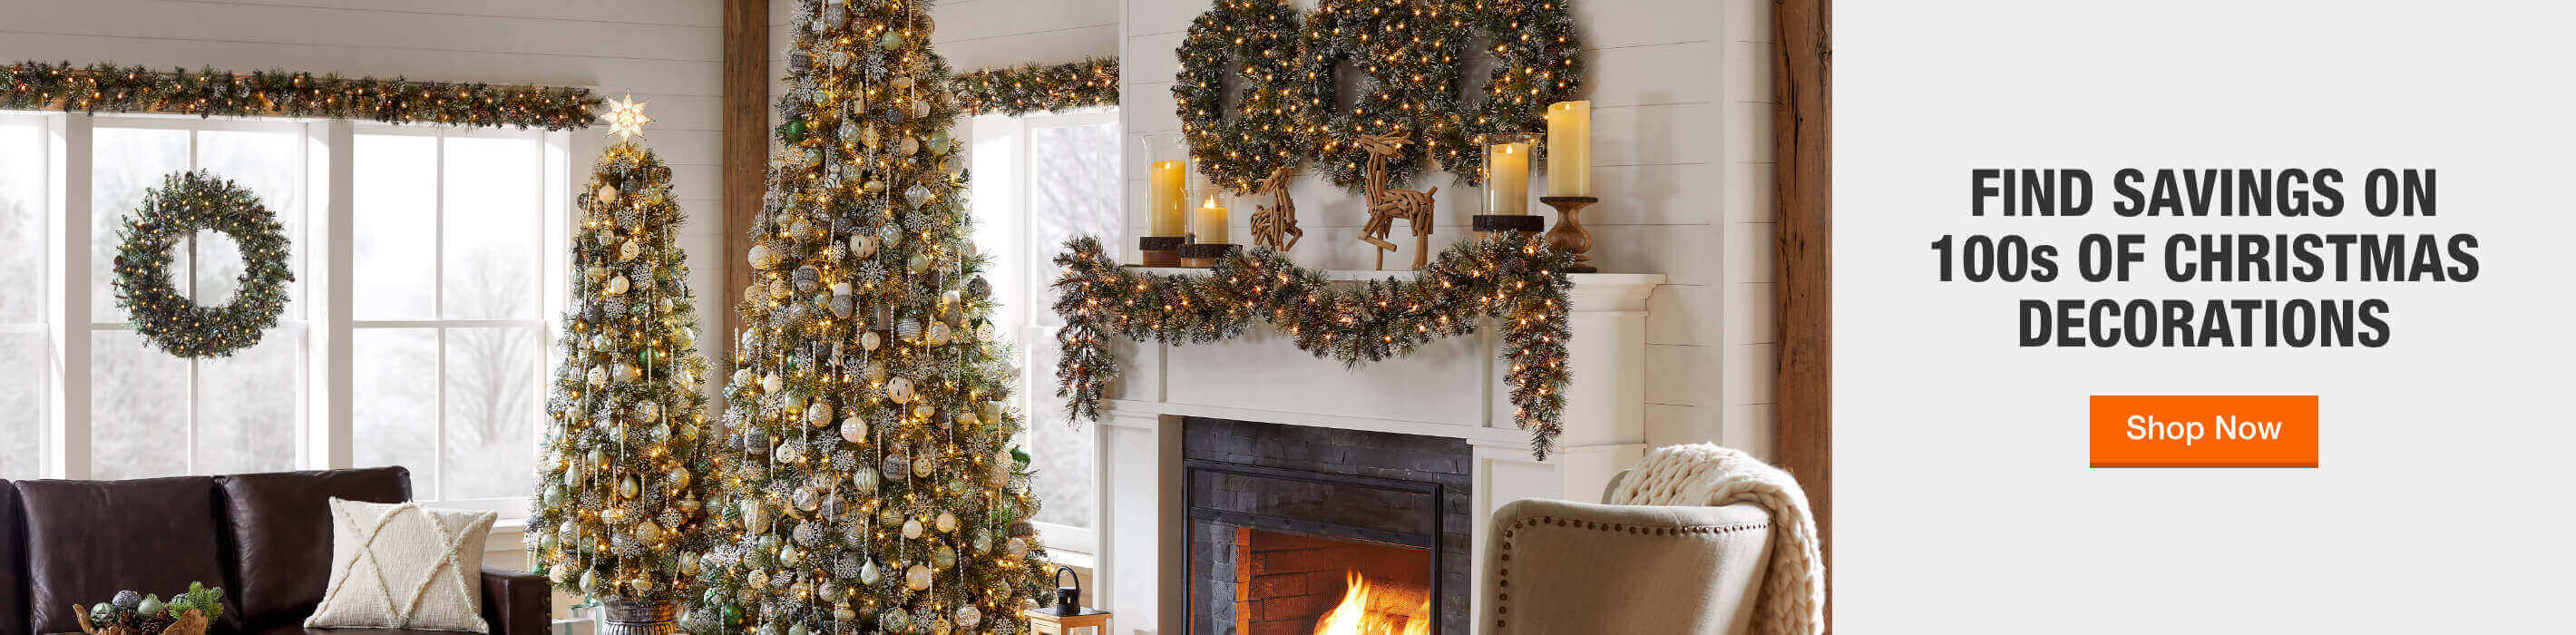 FIND SAVINGS ON 100s OF CHRISTMAS DECORATIONS - Shop Now